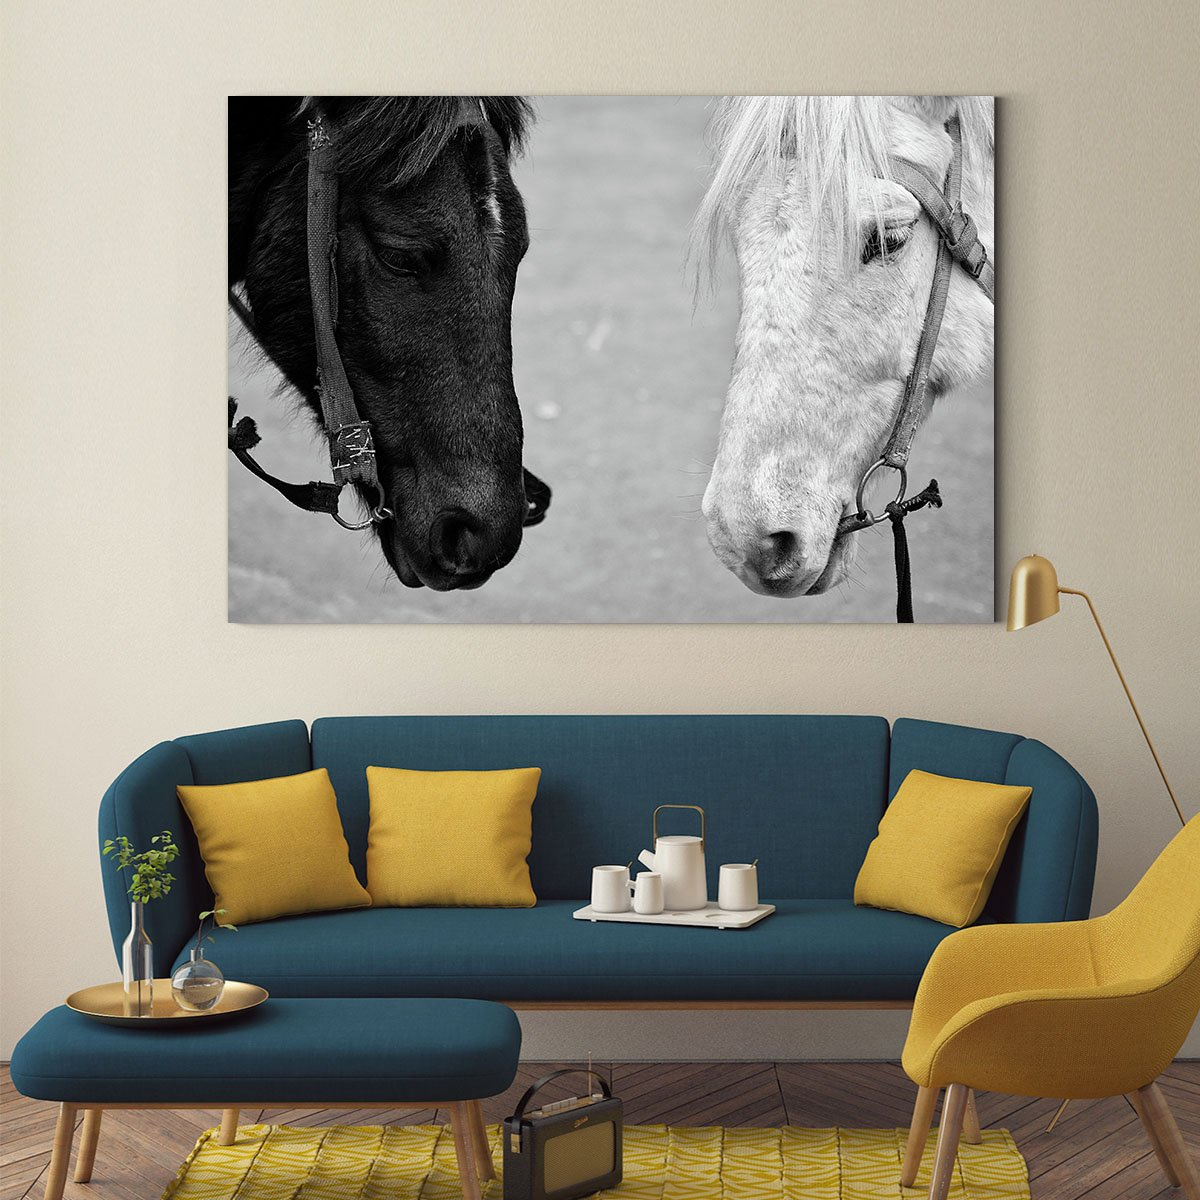 Handsome horse animal decorative painting 005